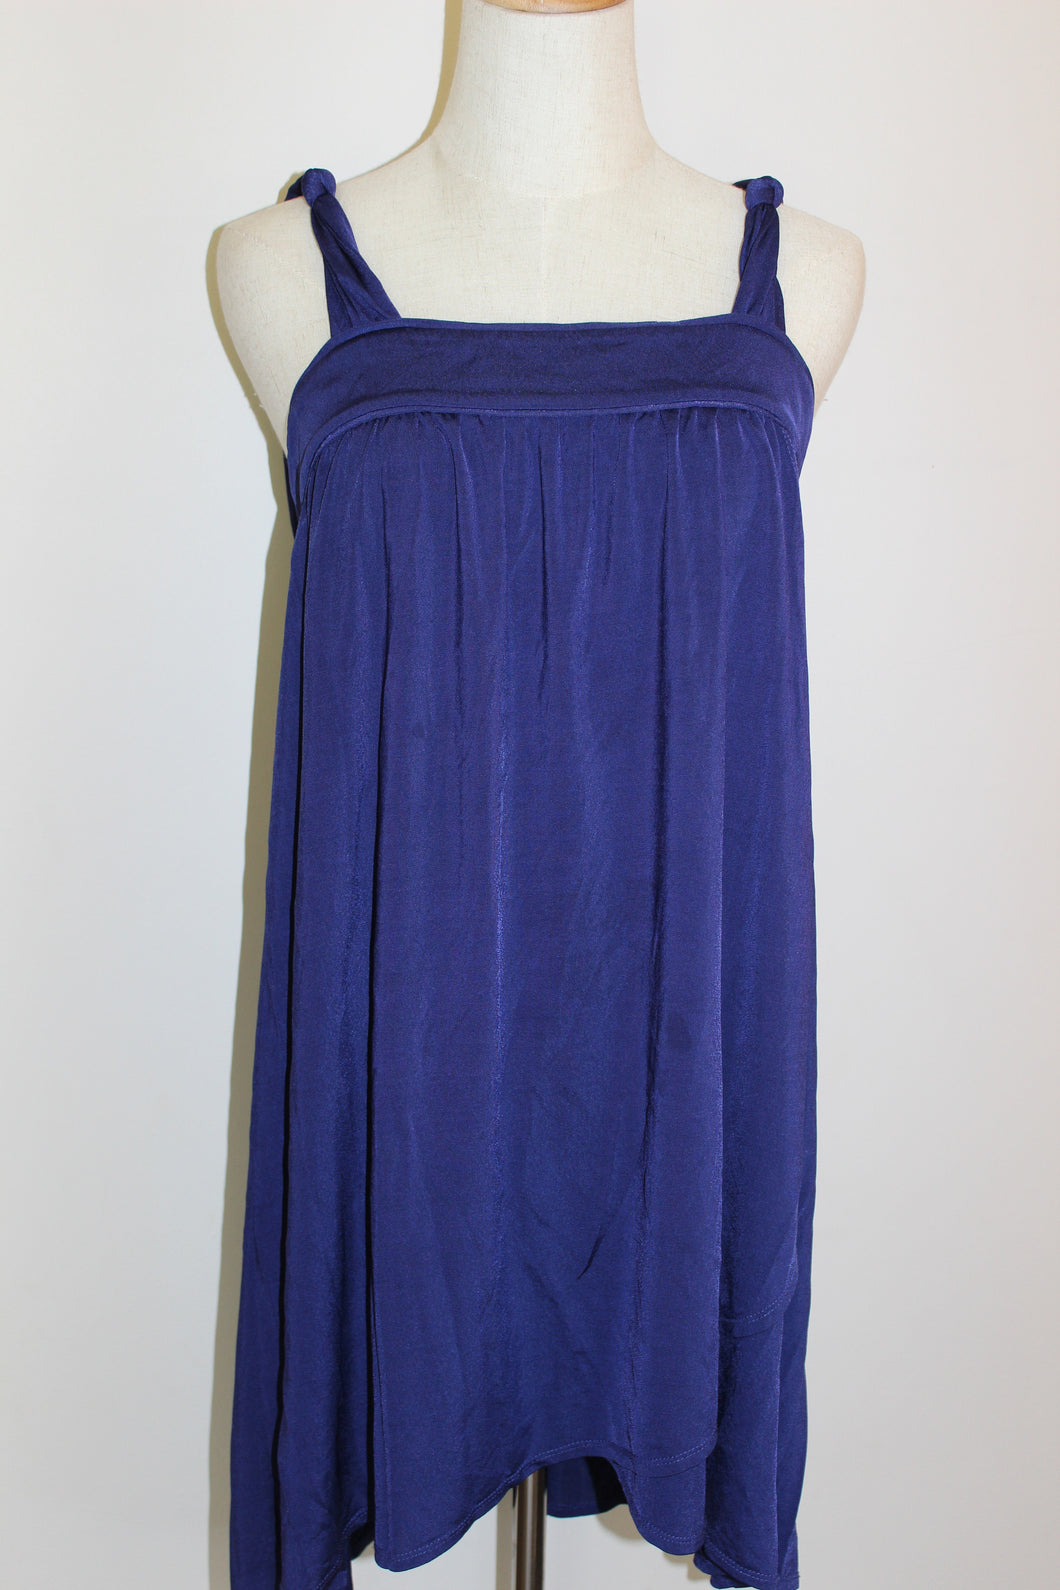 Zimmermann Dress Size 2 *CLEARANCE*